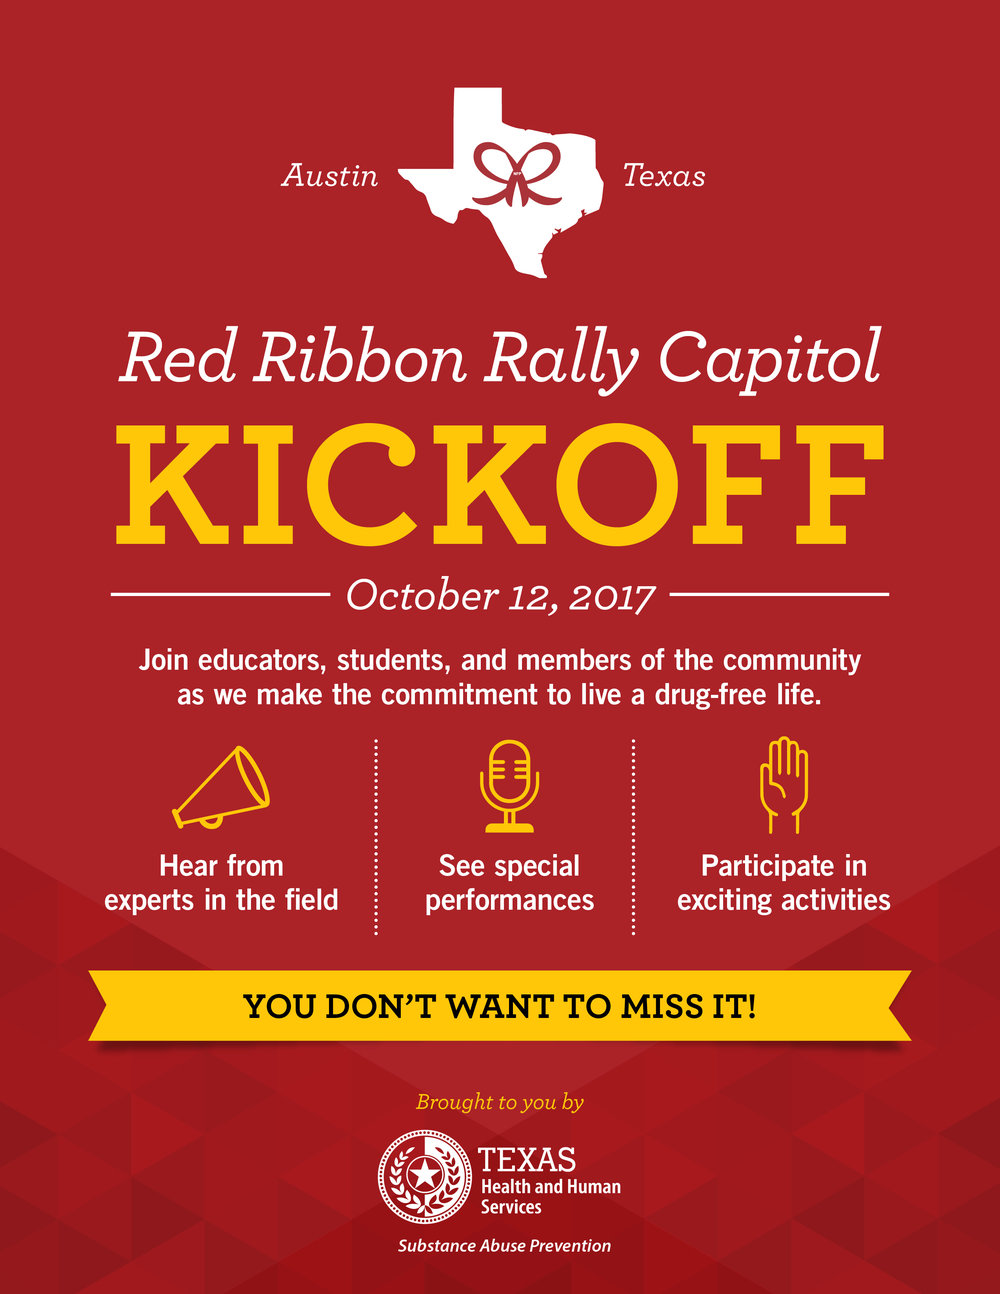 Red Ribbon Rally Flyer Design  (Click to expand)